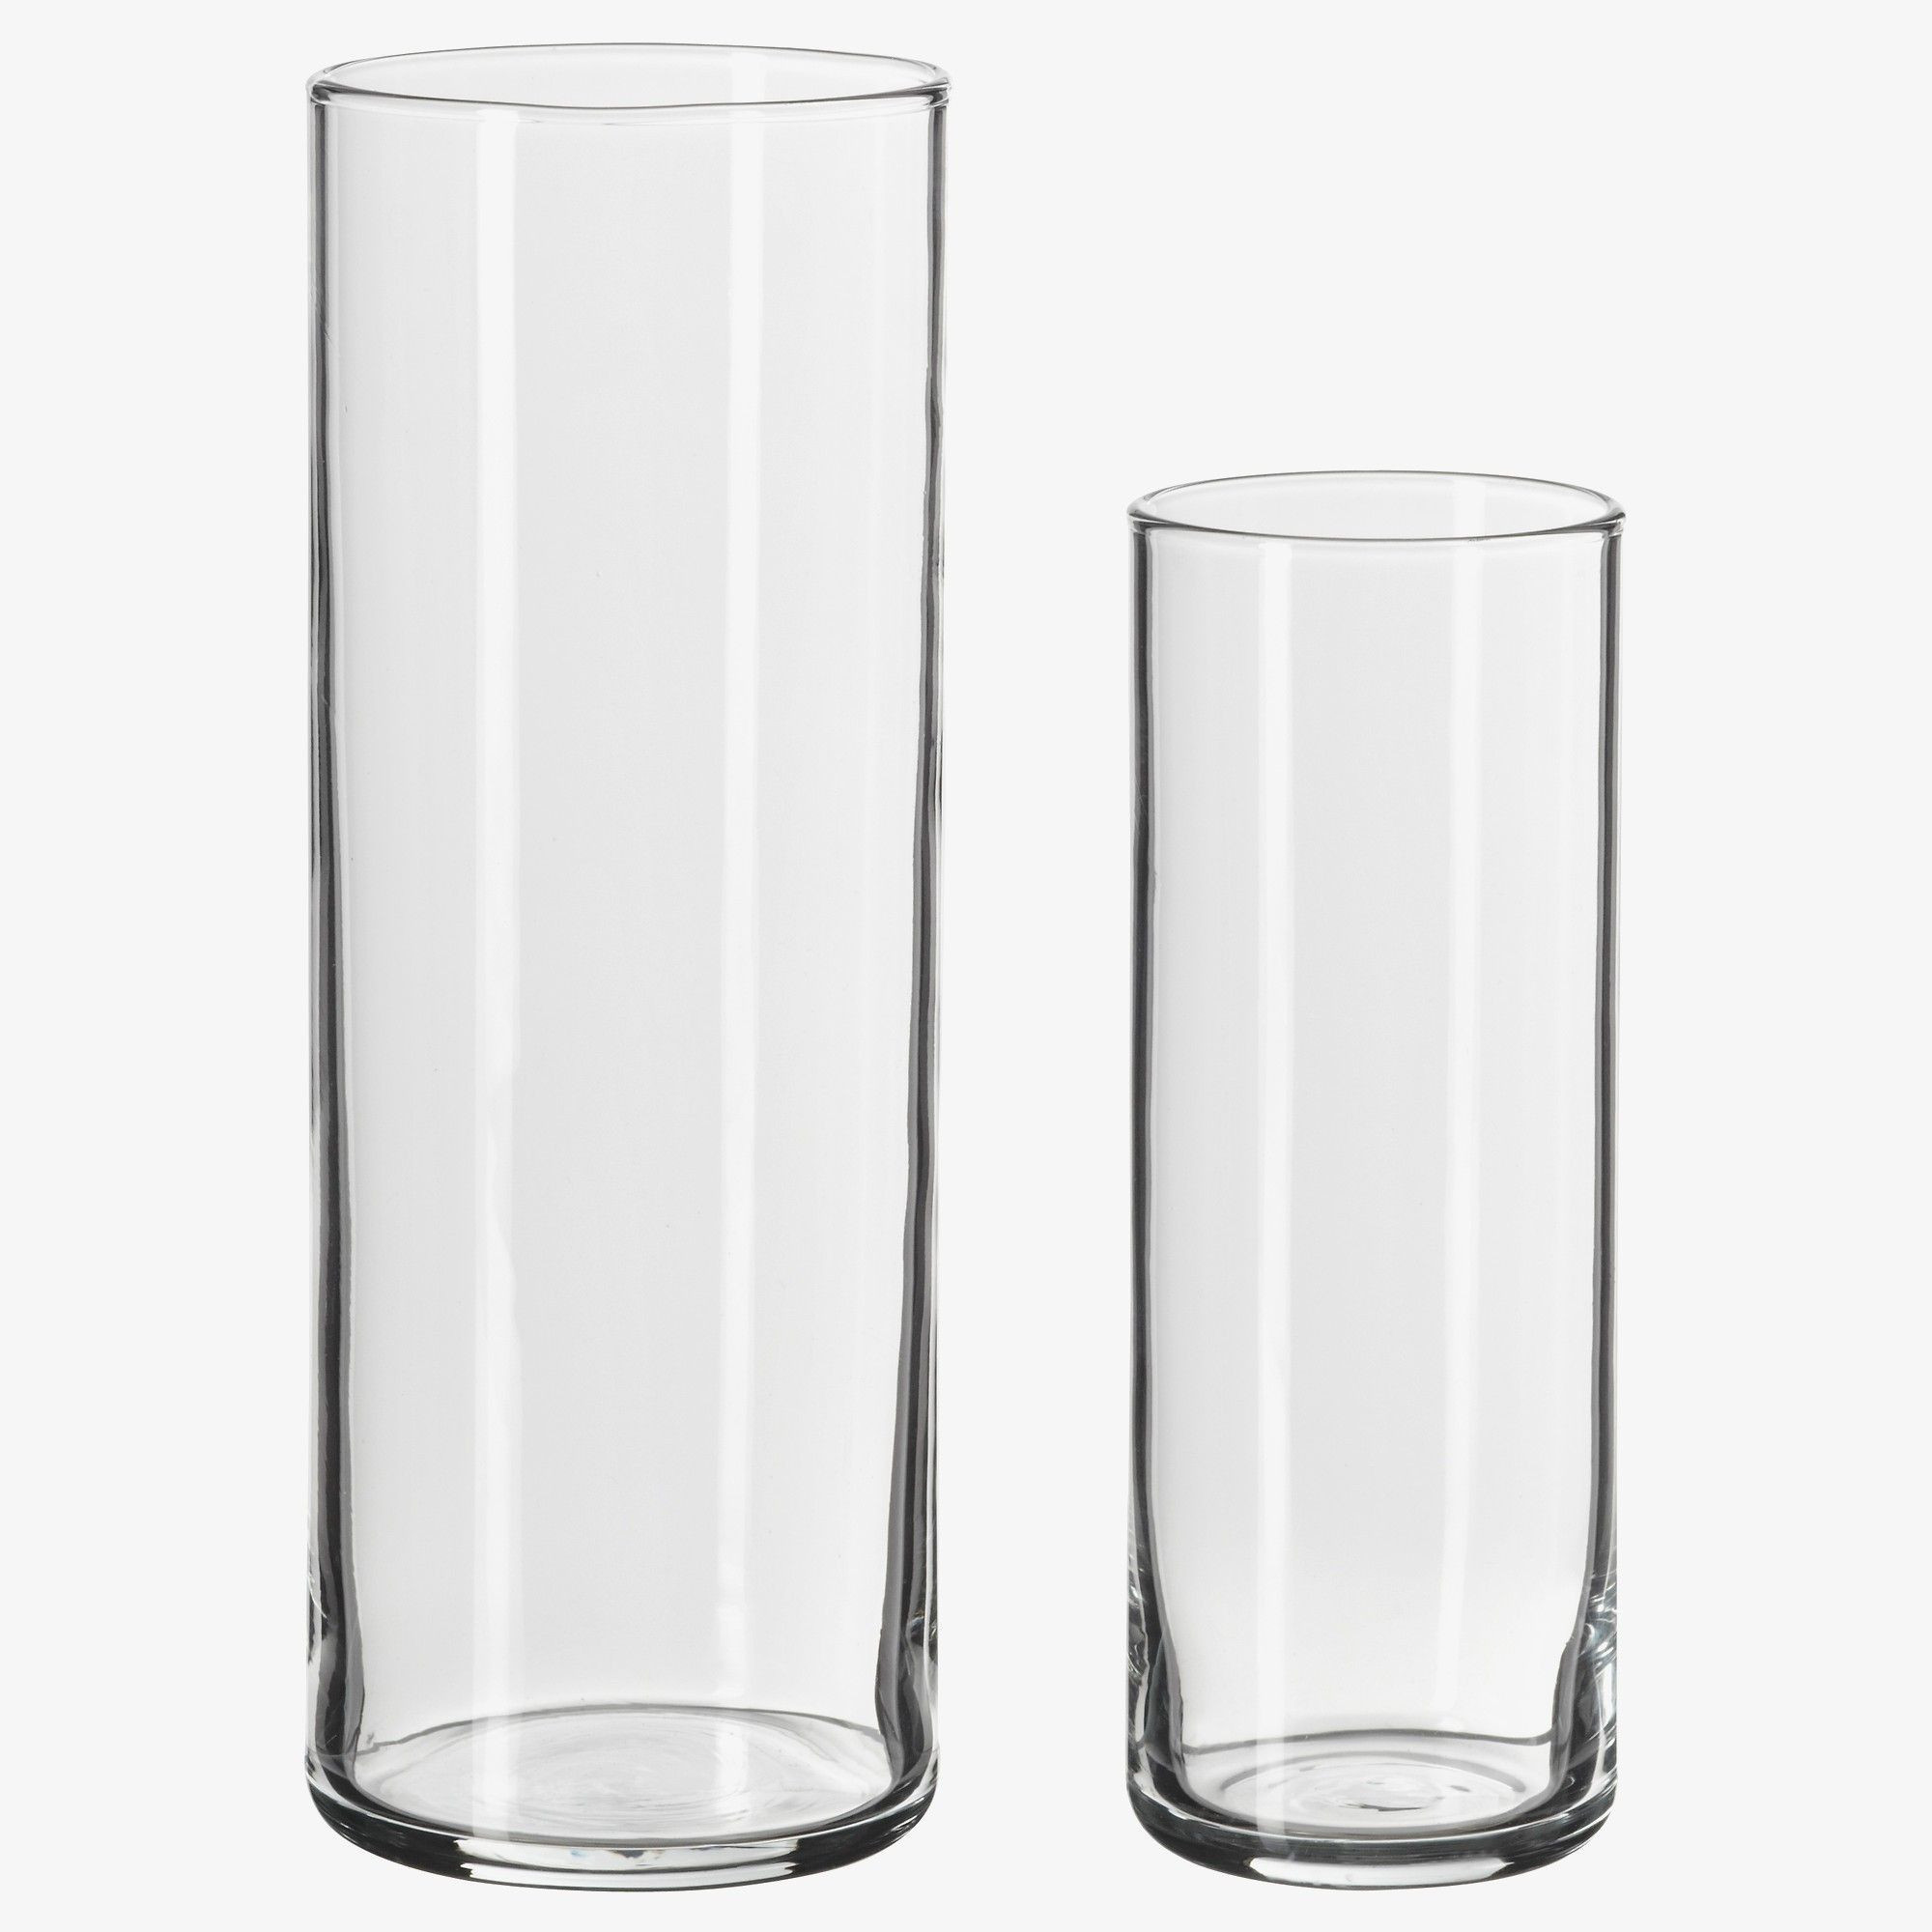 Tall Cylinder Vases Bulk 24 Of 40 Glass Vases Bulk the Weekly World within Clear Glass Tv Stand Charming New Design Ikea Mantel Great Pe S5h